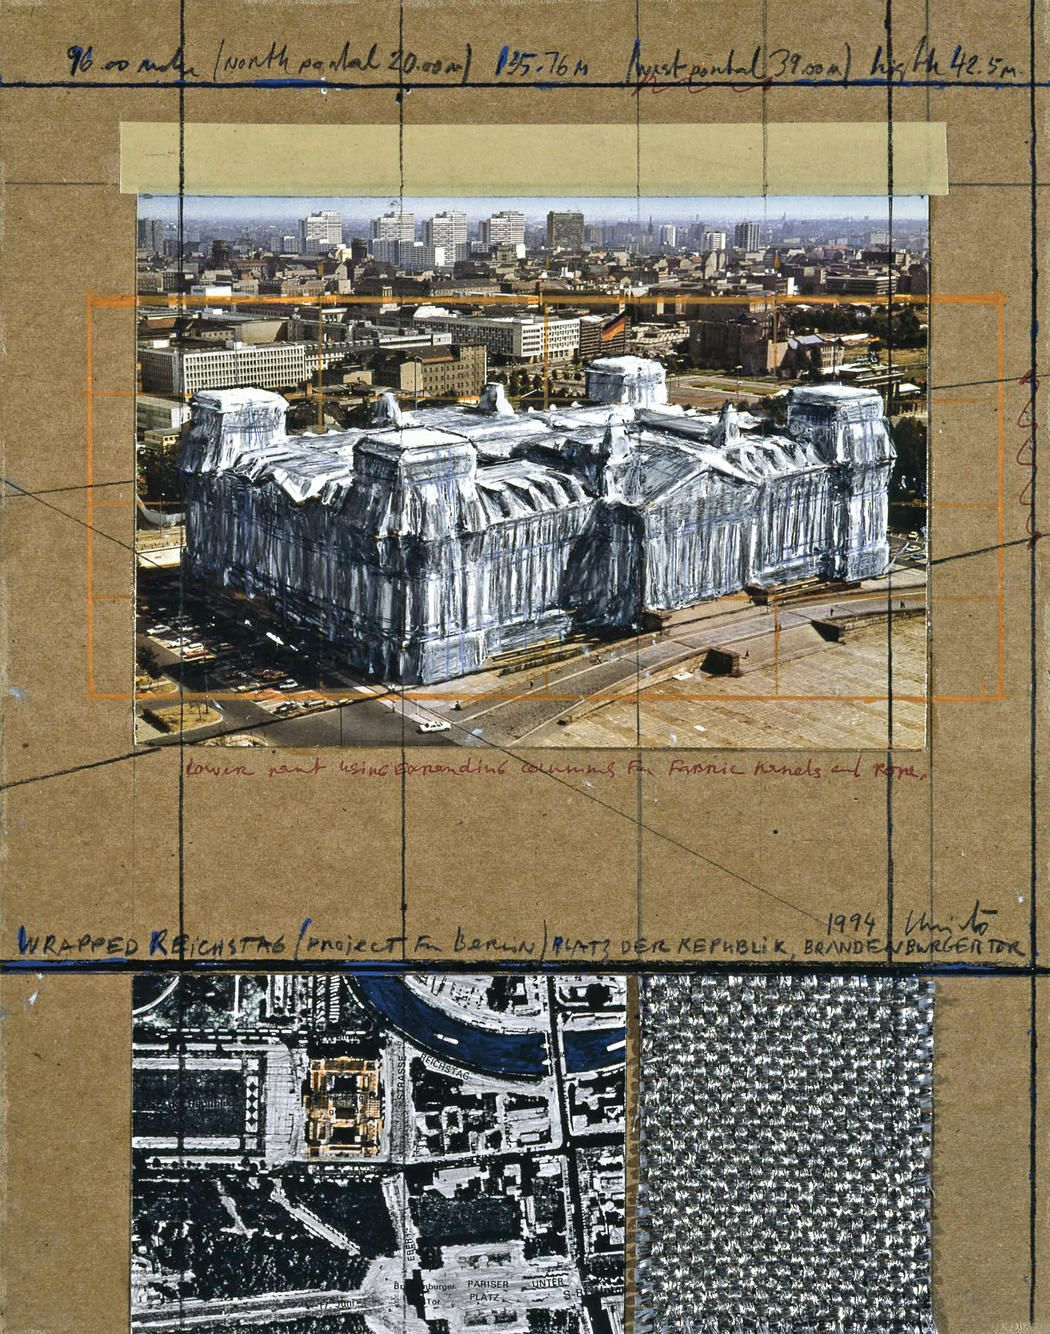 Projects Wrapped Reichstag Christo And Jeanne Claude Christo Art Jeanne Claude